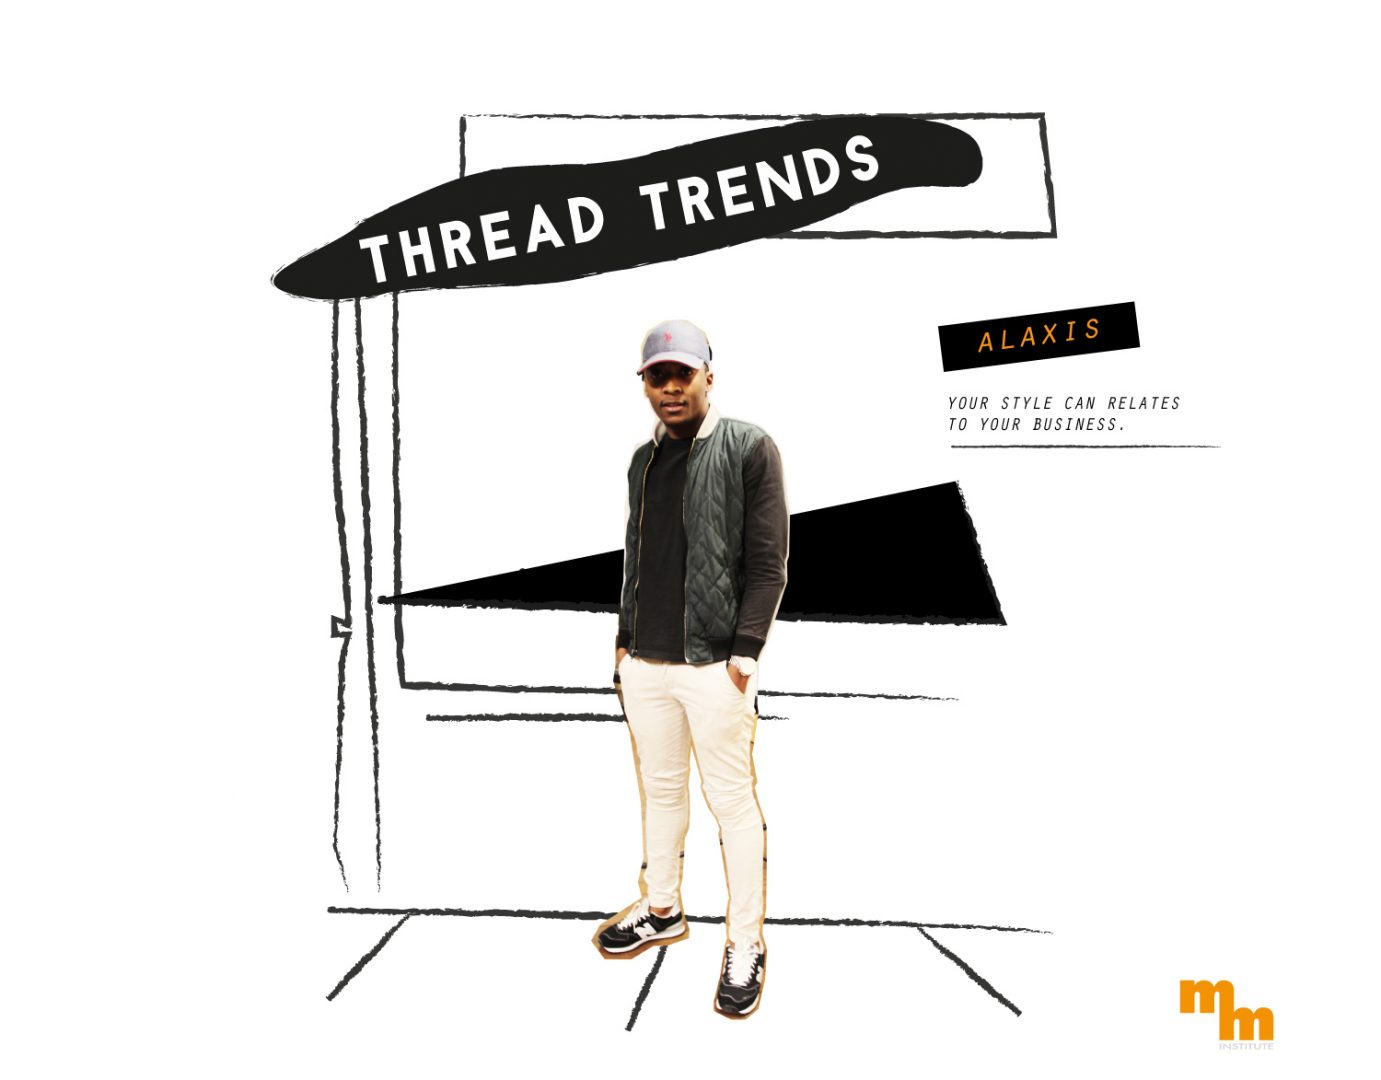 thredtrends12